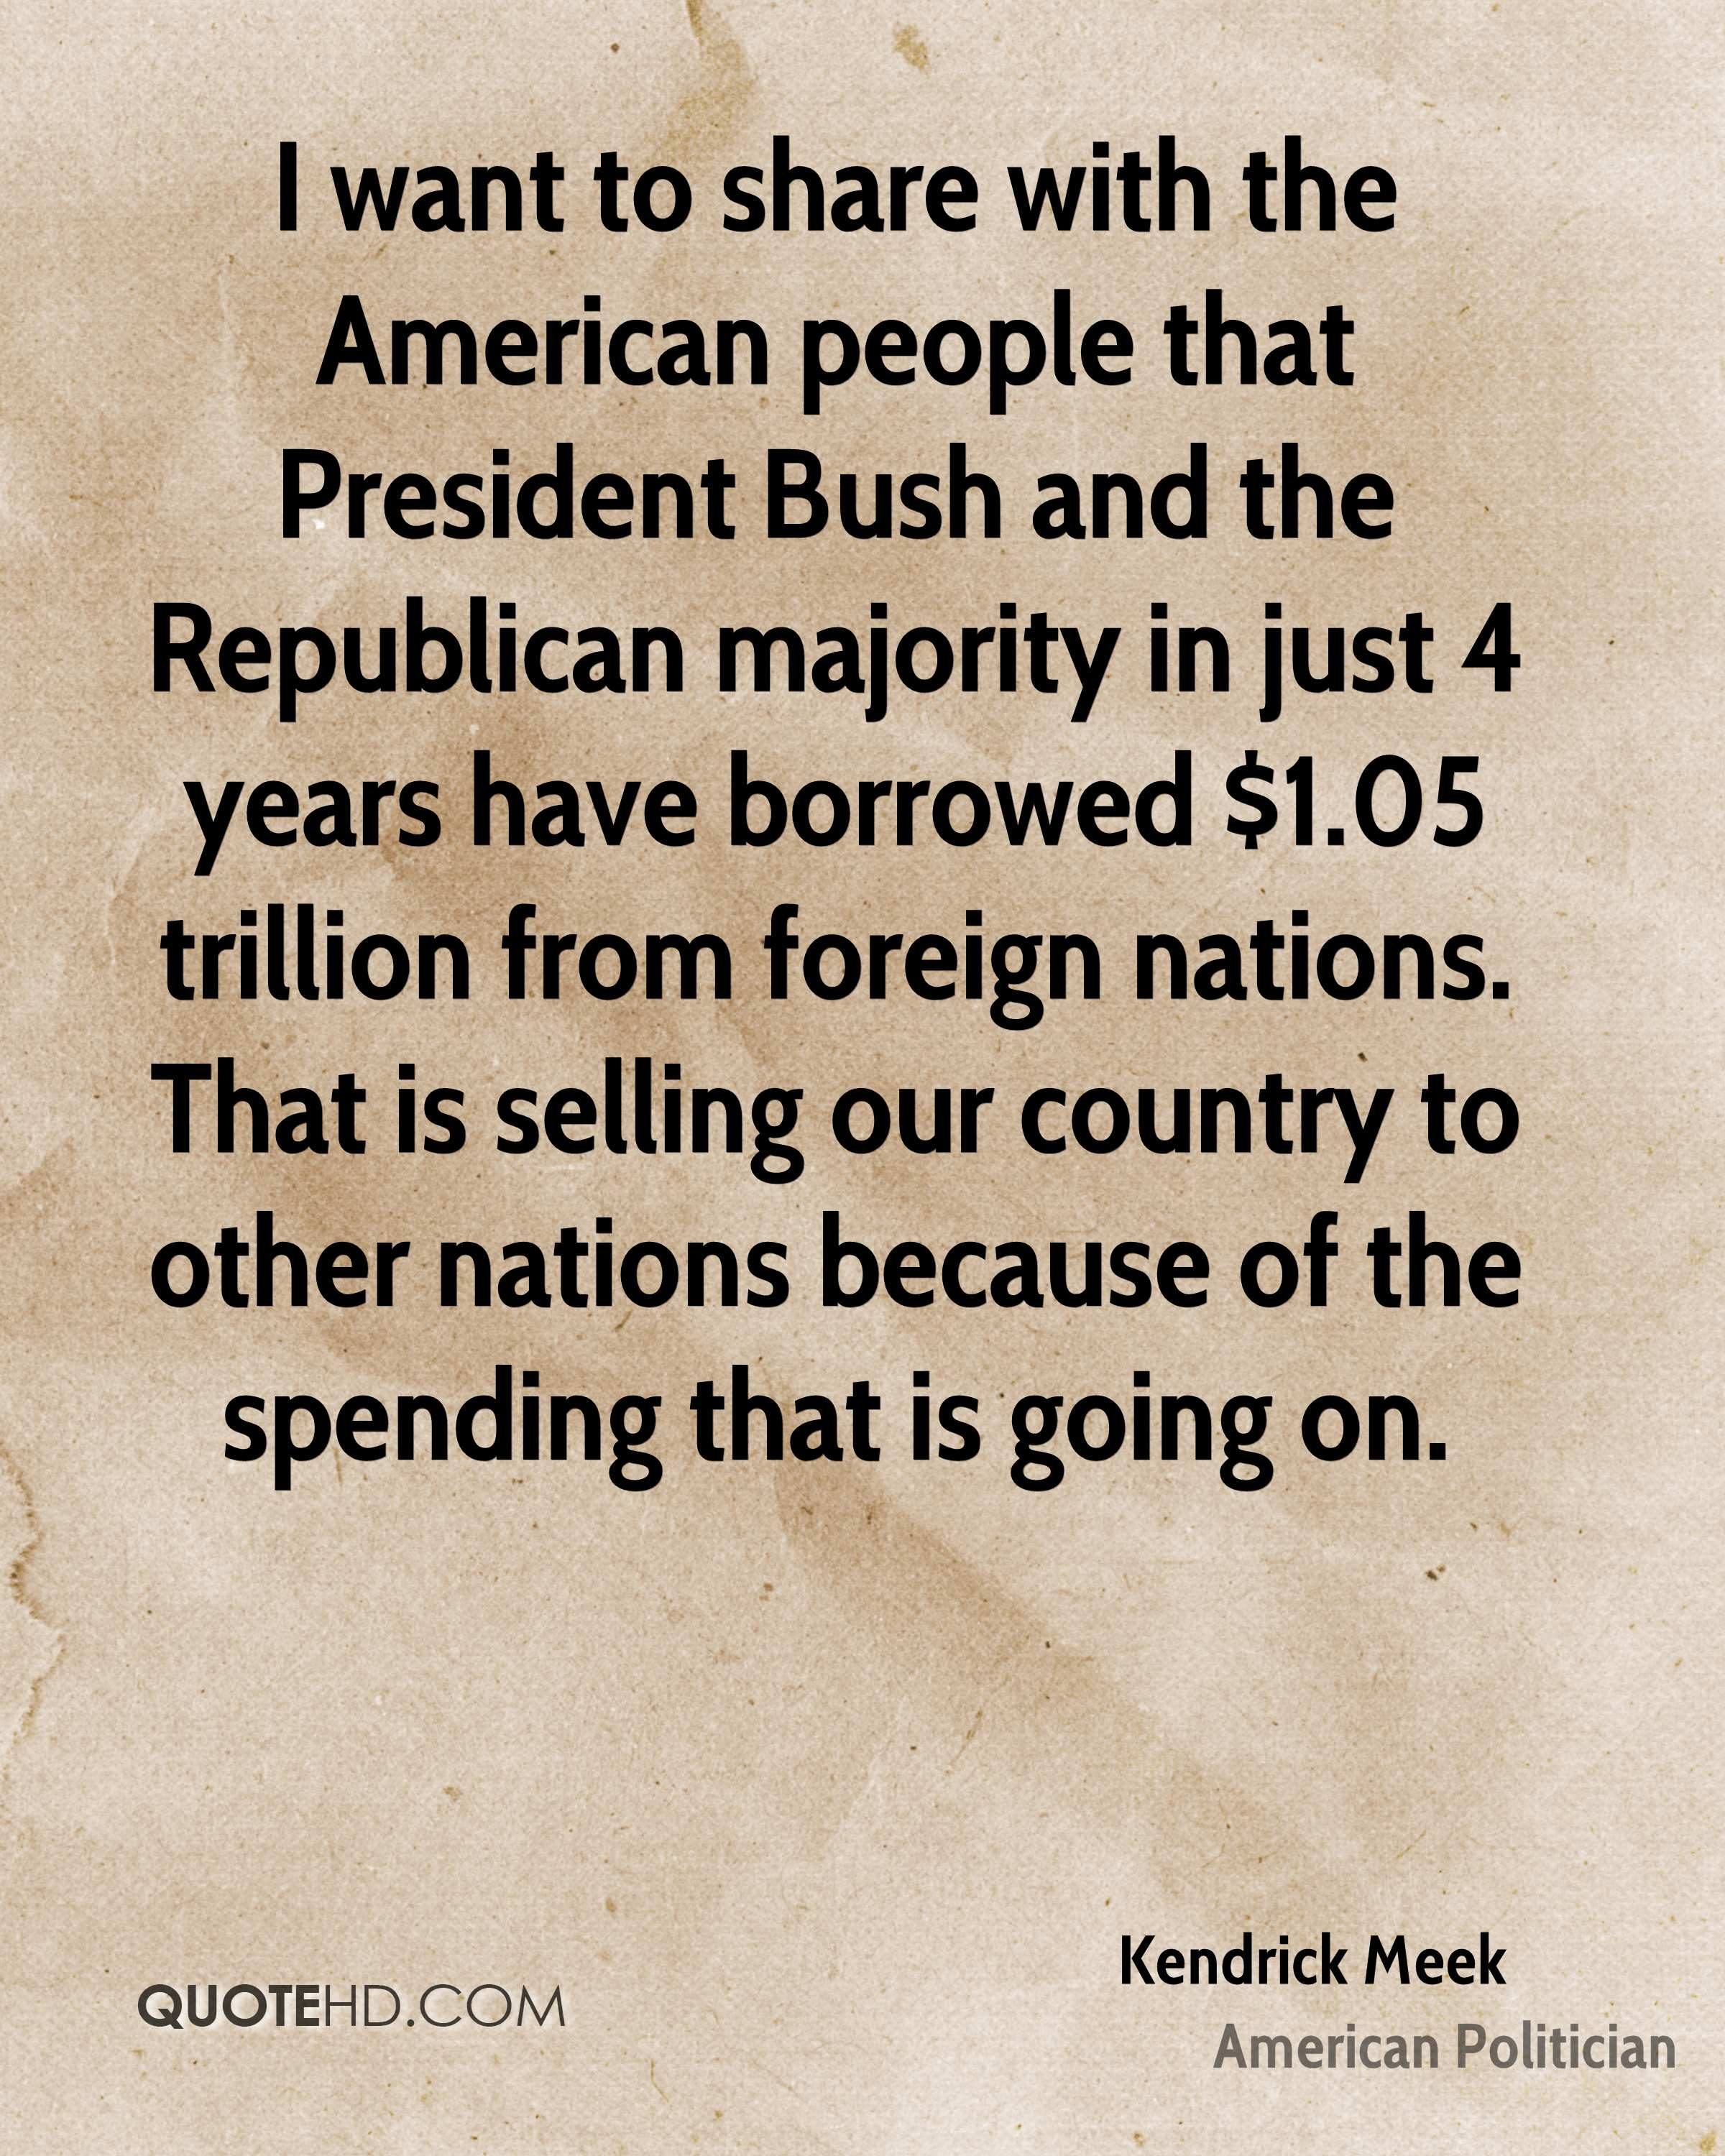 I want to share with the American people that President Bush and the Republican majority in just 4 years have borrowed $1.05 trillion from foreign nations. That is selling our country to other nations because of the spending that is going on.